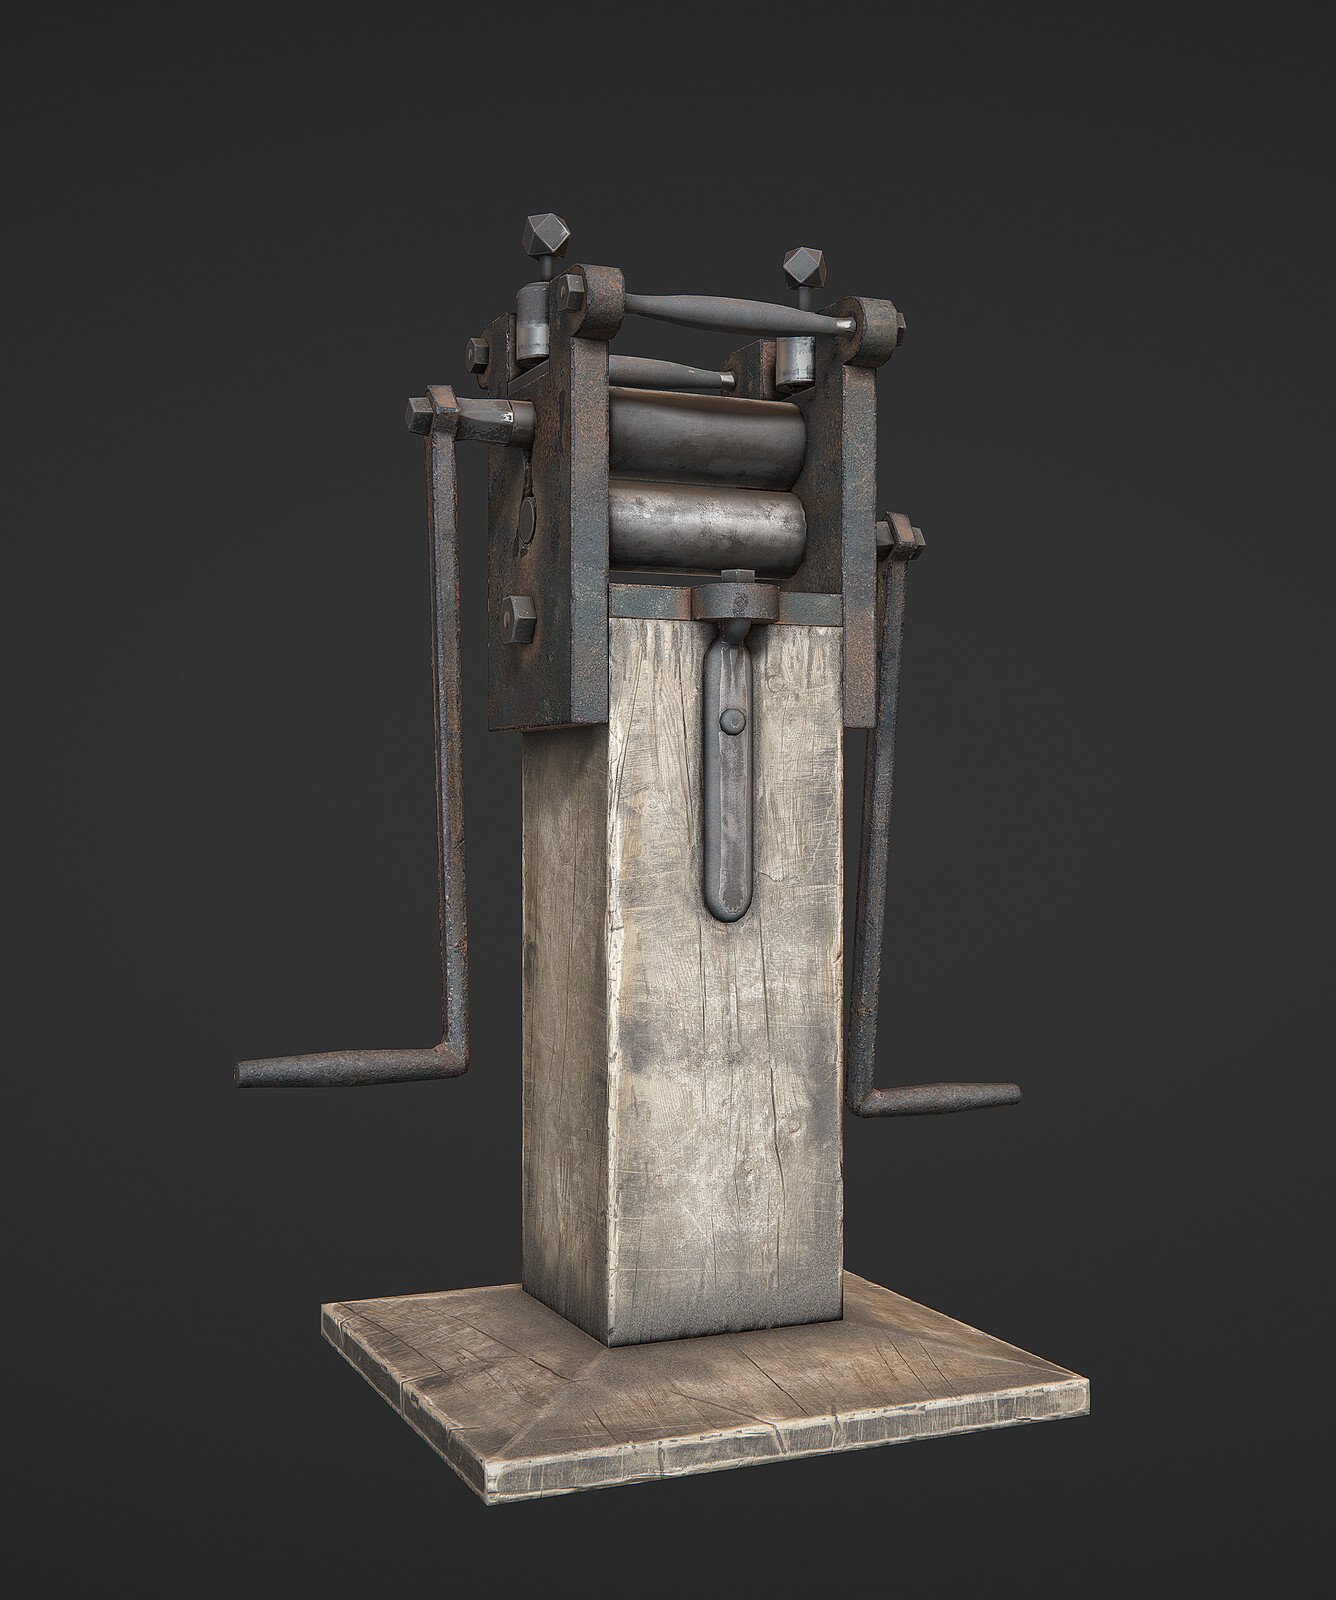 Hand-operated-metal-rolling_Mill